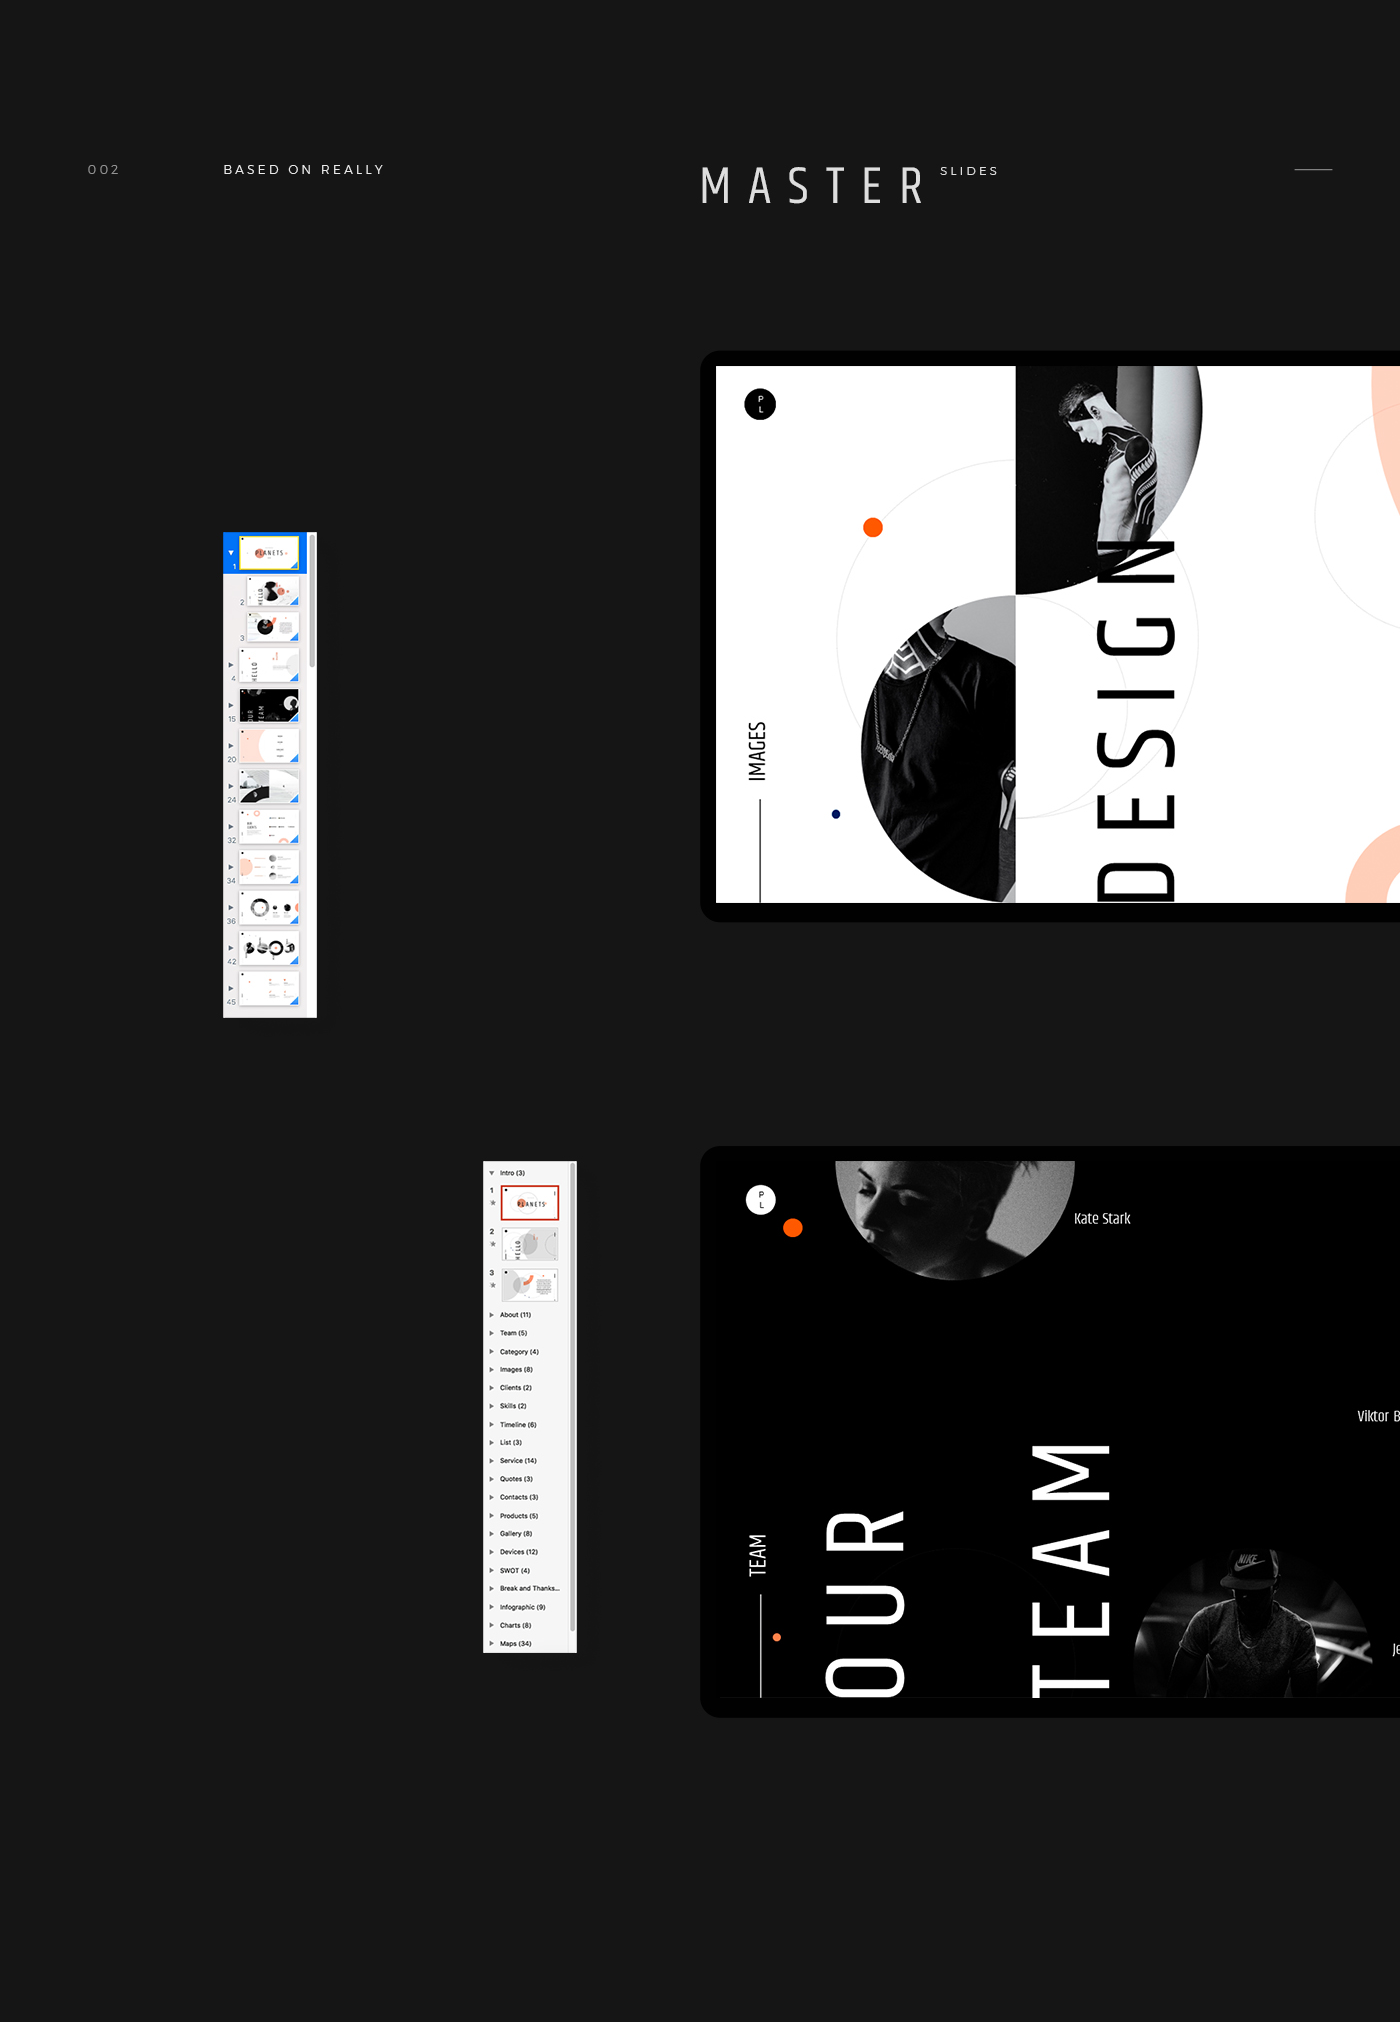 PLANETS - FREE Presentation Template on Behance